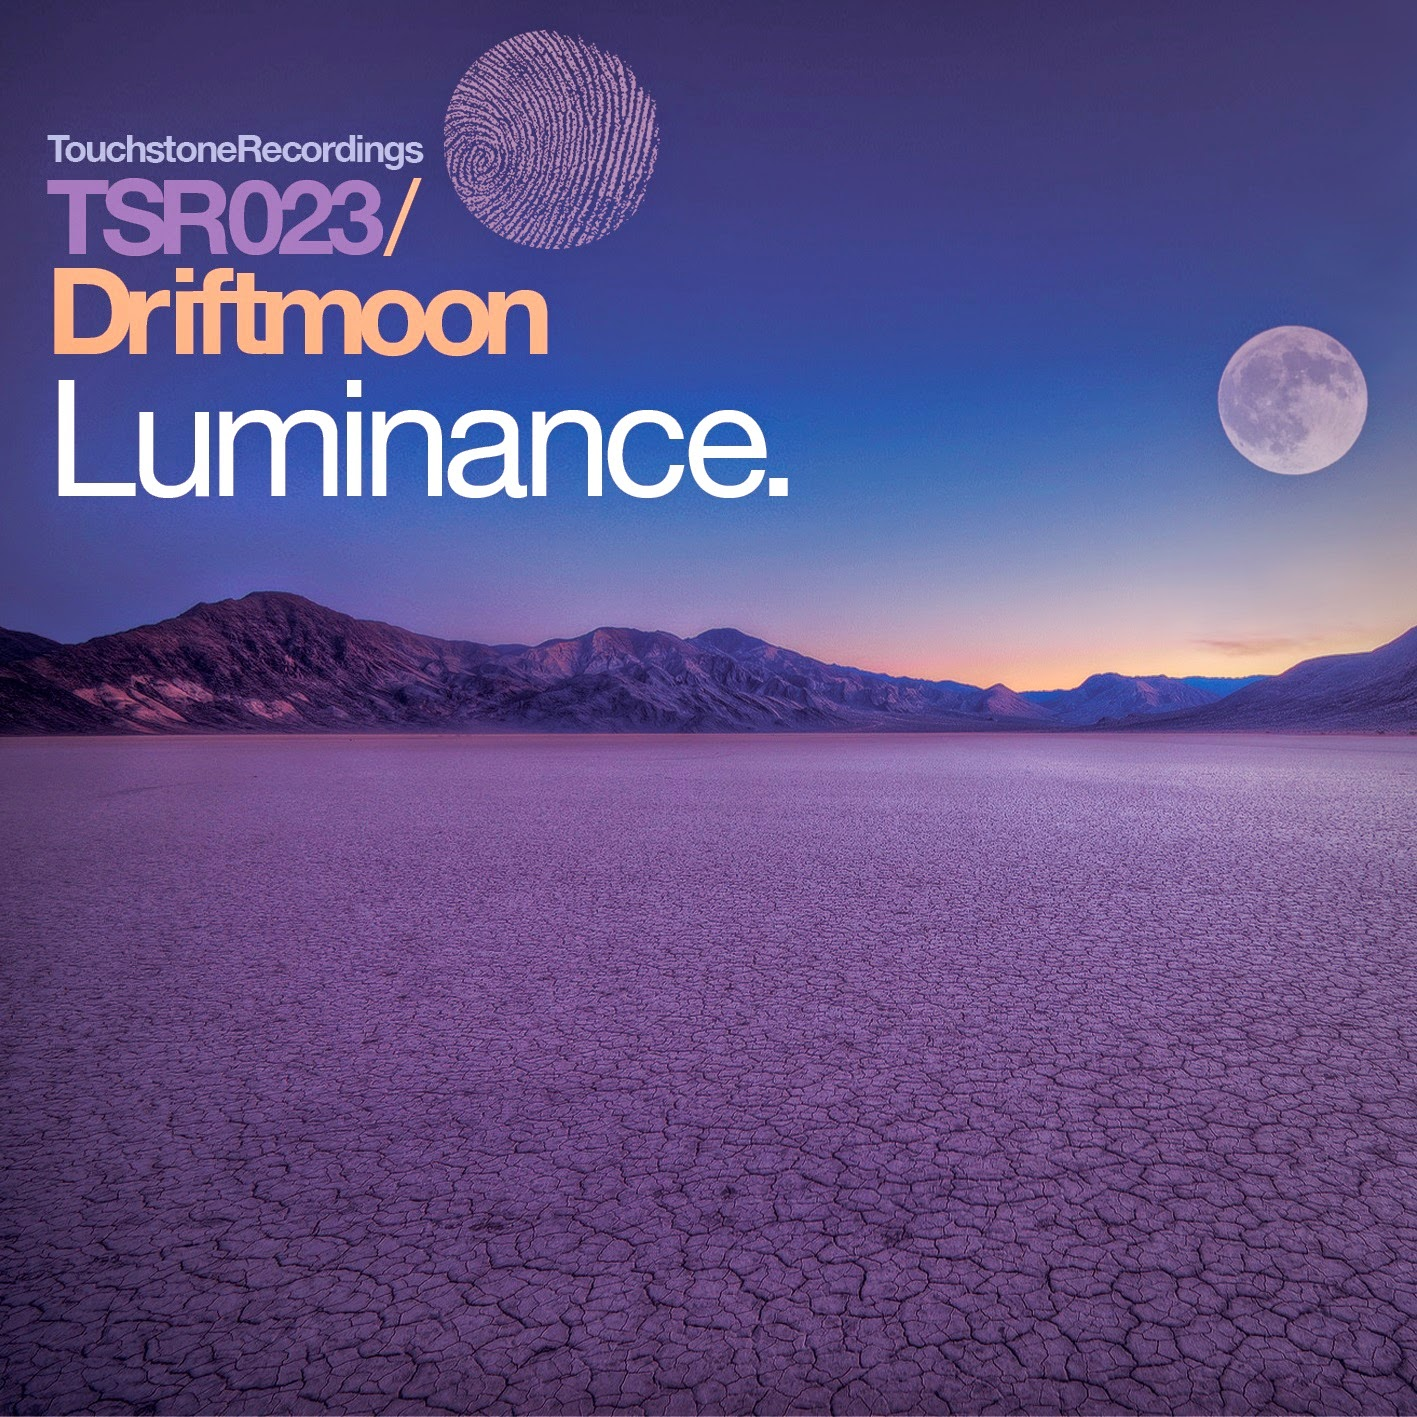 Driftmoon - Luminance (Uplifting Mix)